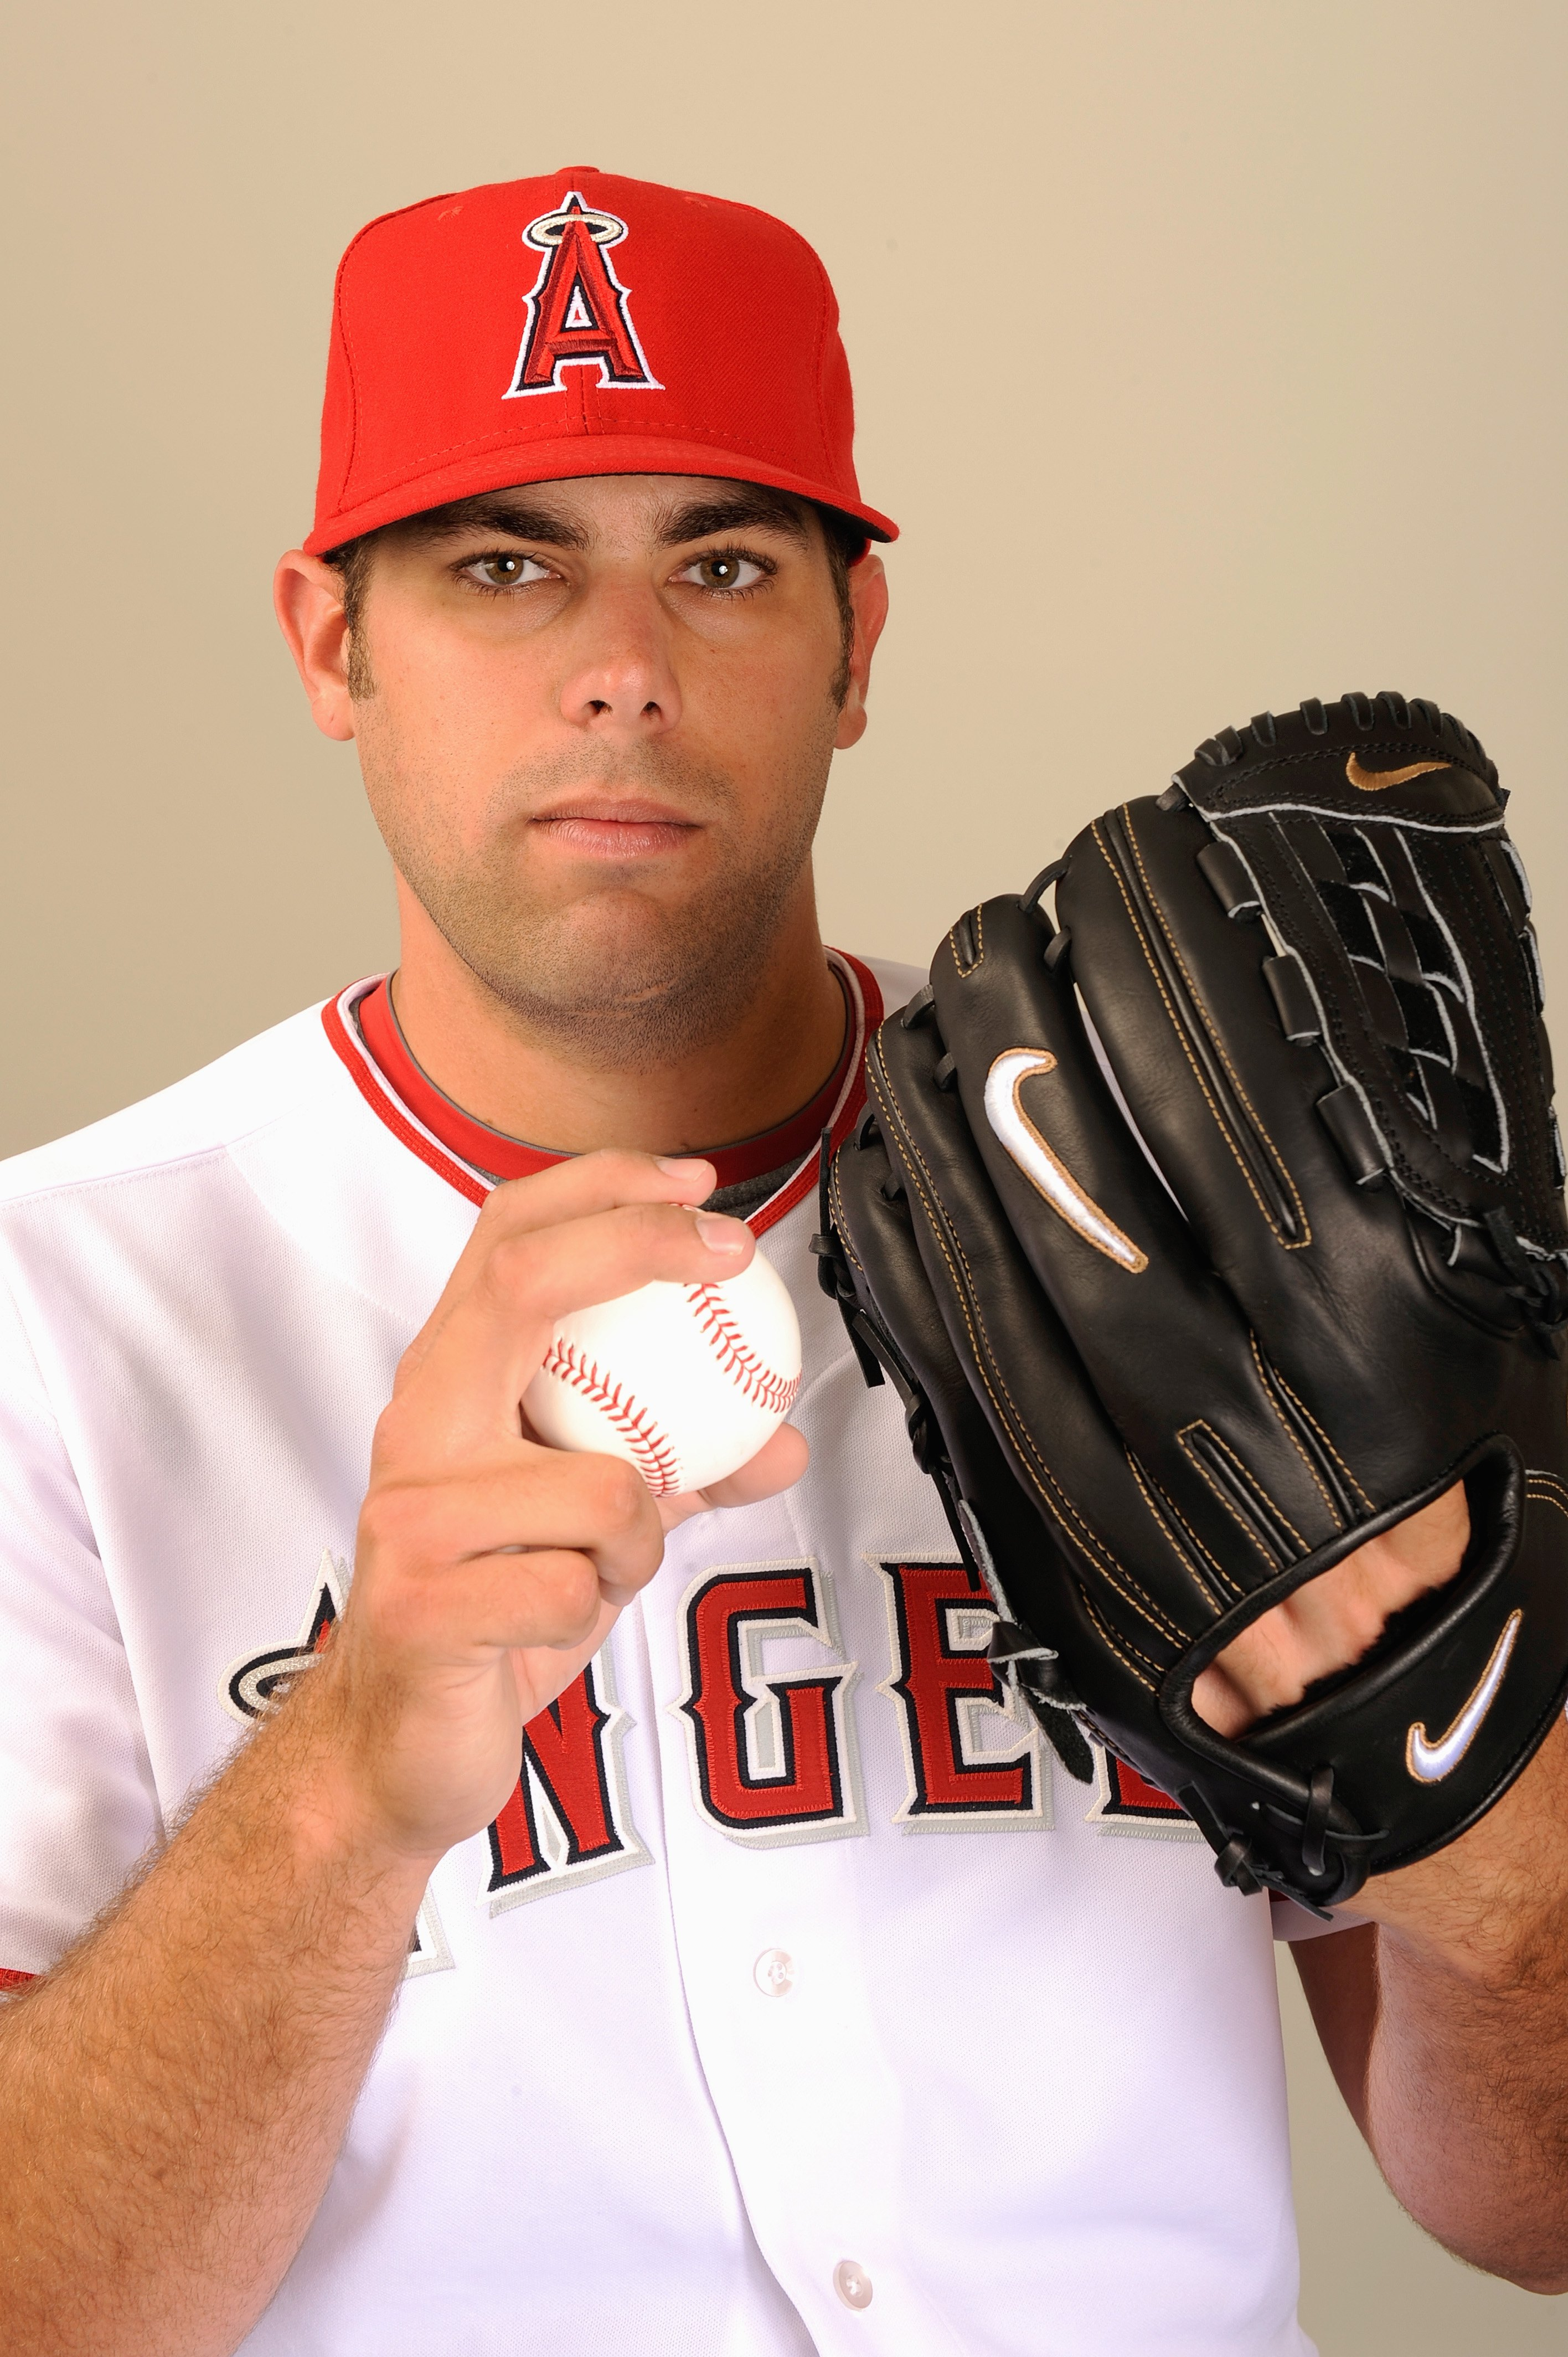 TEMPE, AZ - FEBRUARY 25:  Jordan Walden #31 of the Los Angeles Angels of Anaheim poses during photo day at Tempe Diablo Stadium on February 25, 2009 in Tempe, Arizona. (Photo by Kevork Djansezian/Getty Images)